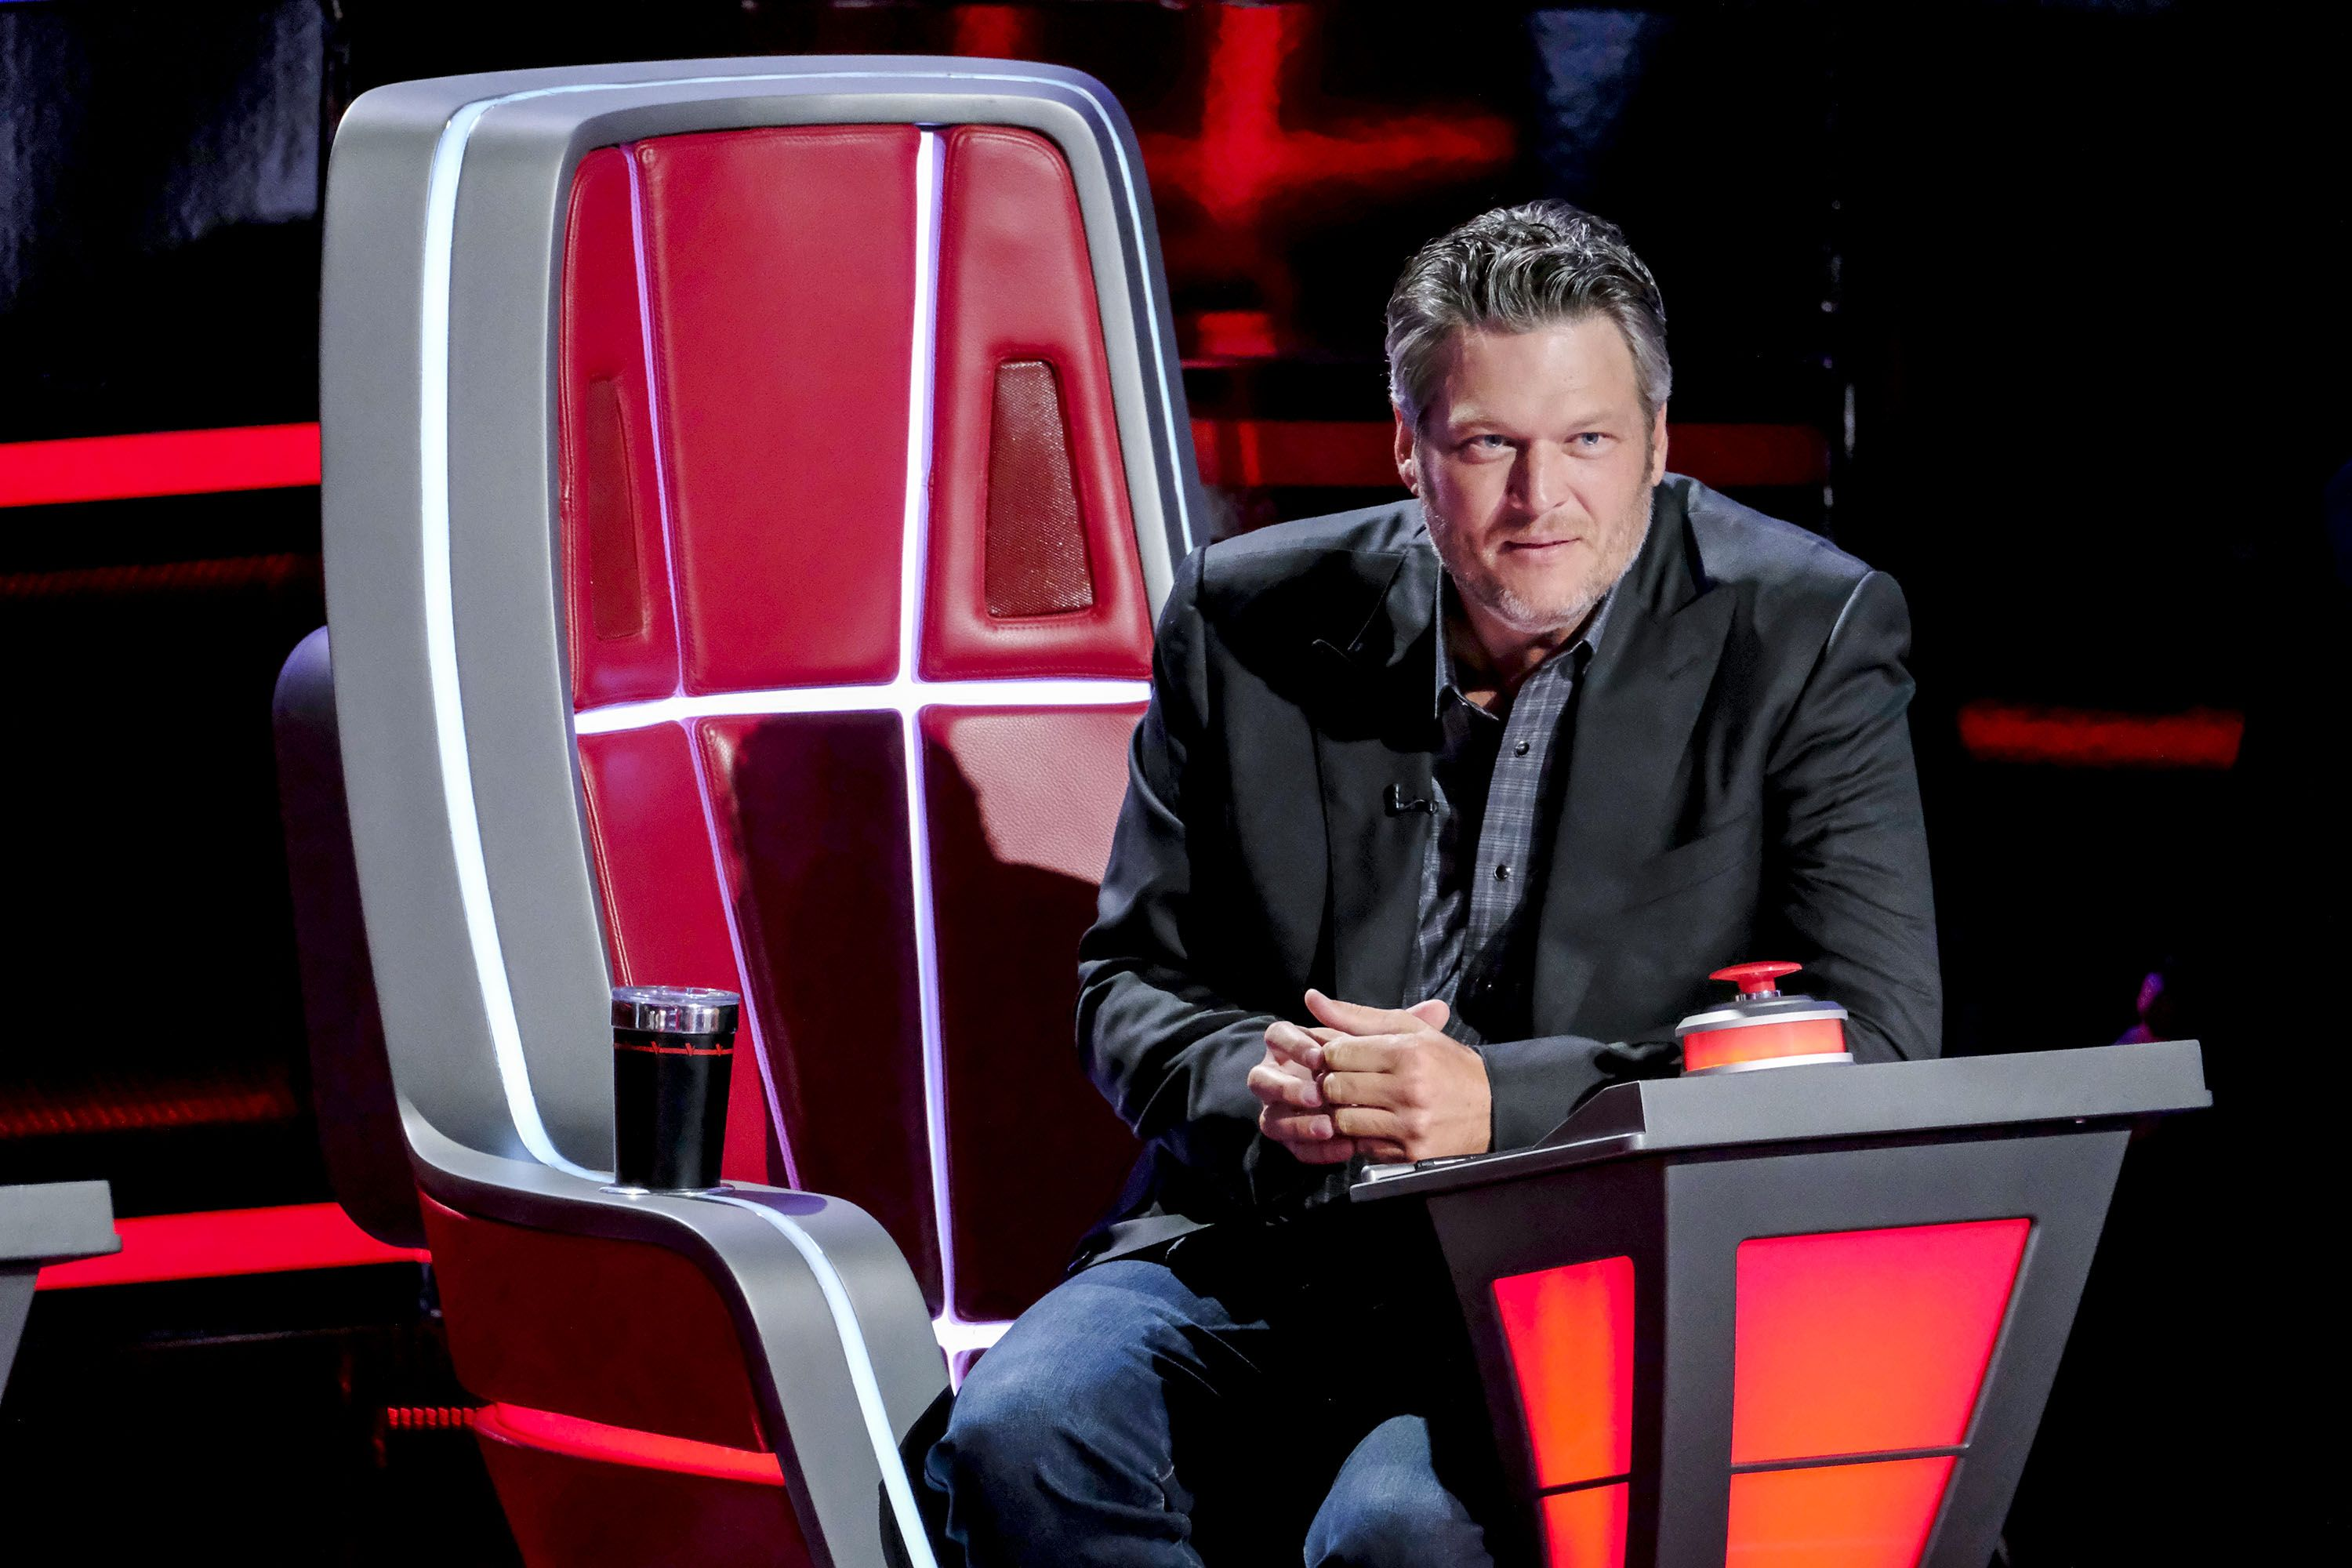 The Voice Coach Blake Shelton Reveals What's in His Cup Every Episode